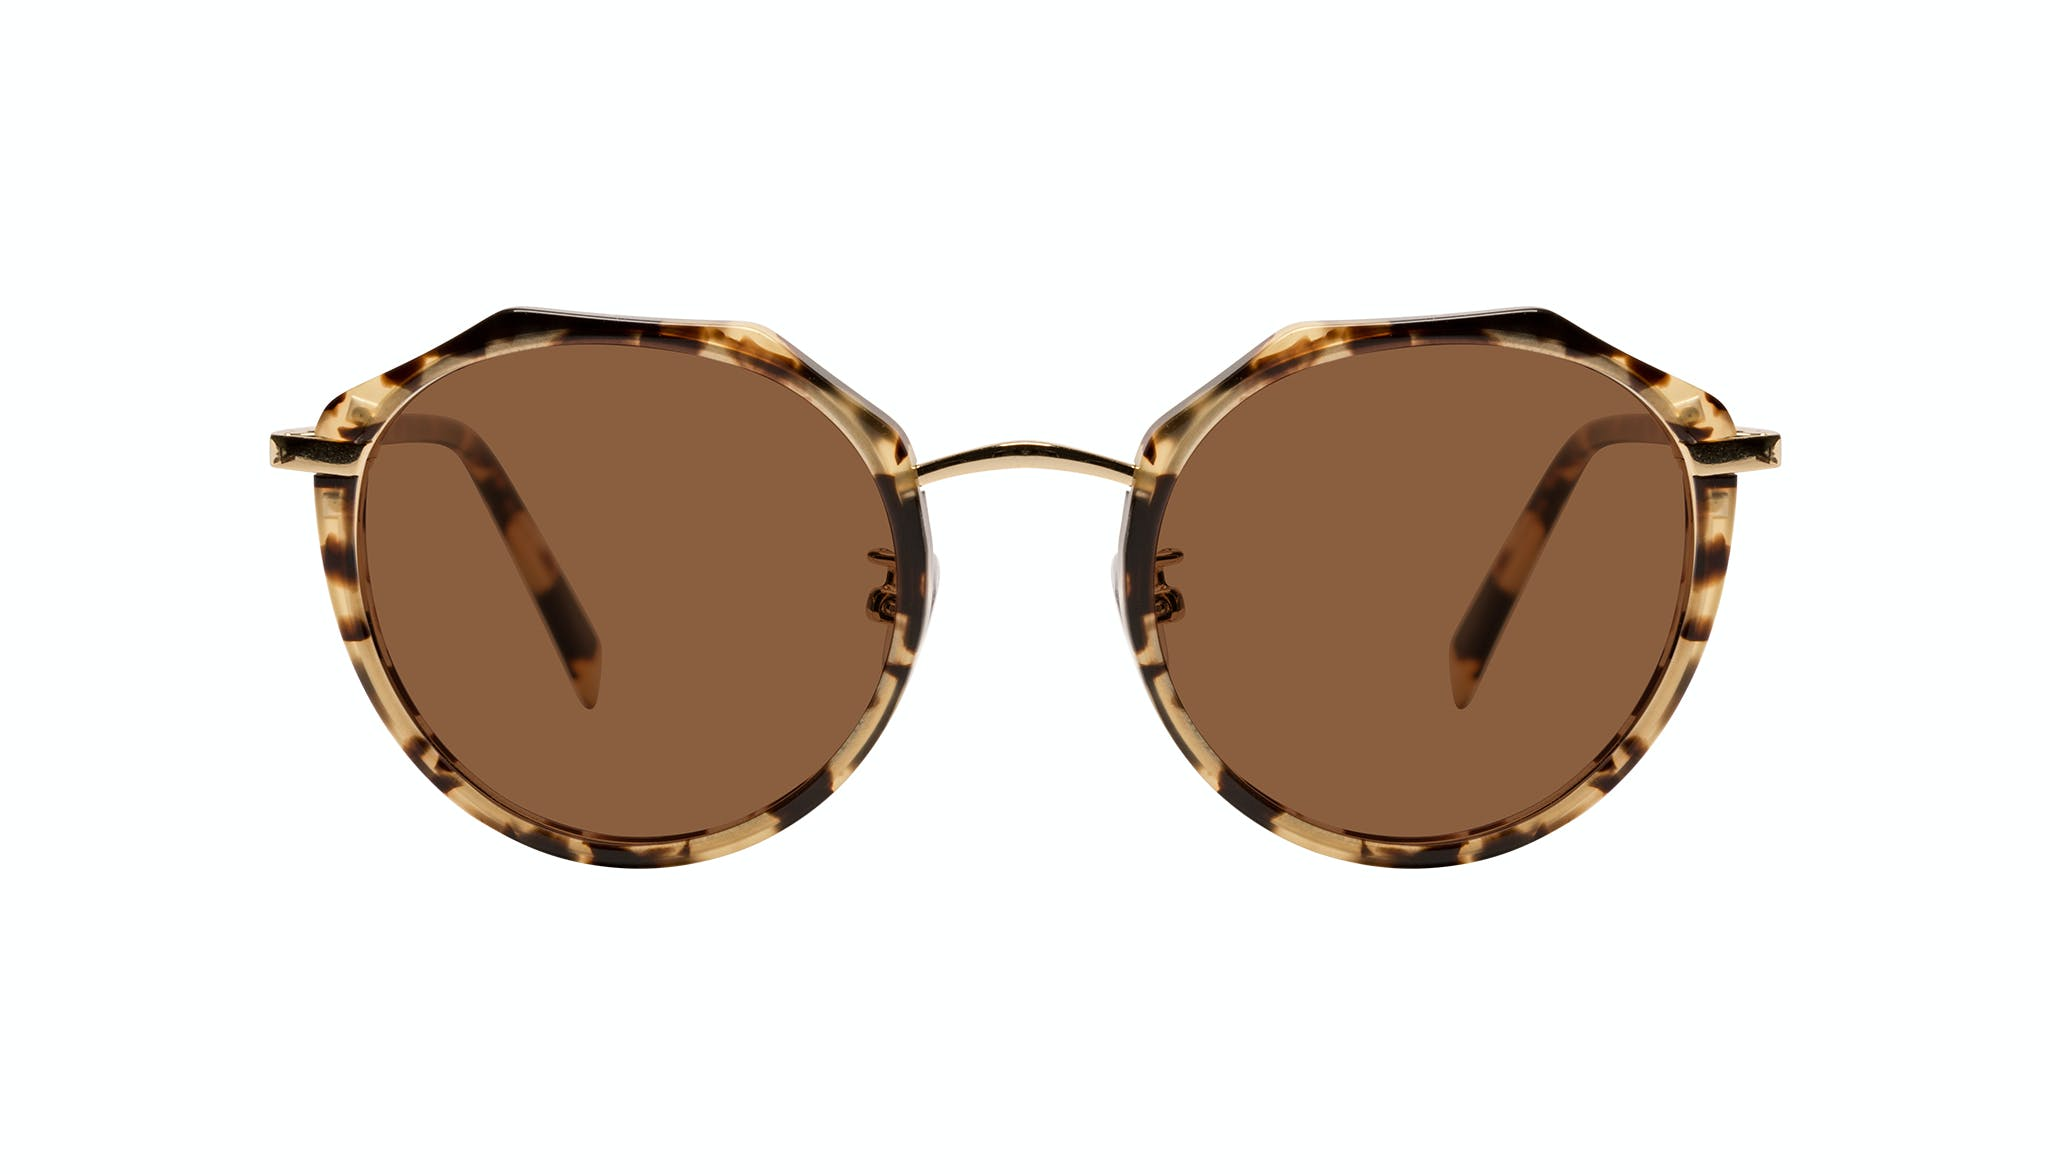 Affordable Fashion Glasses Round Sunglasses Women Womance Mayz